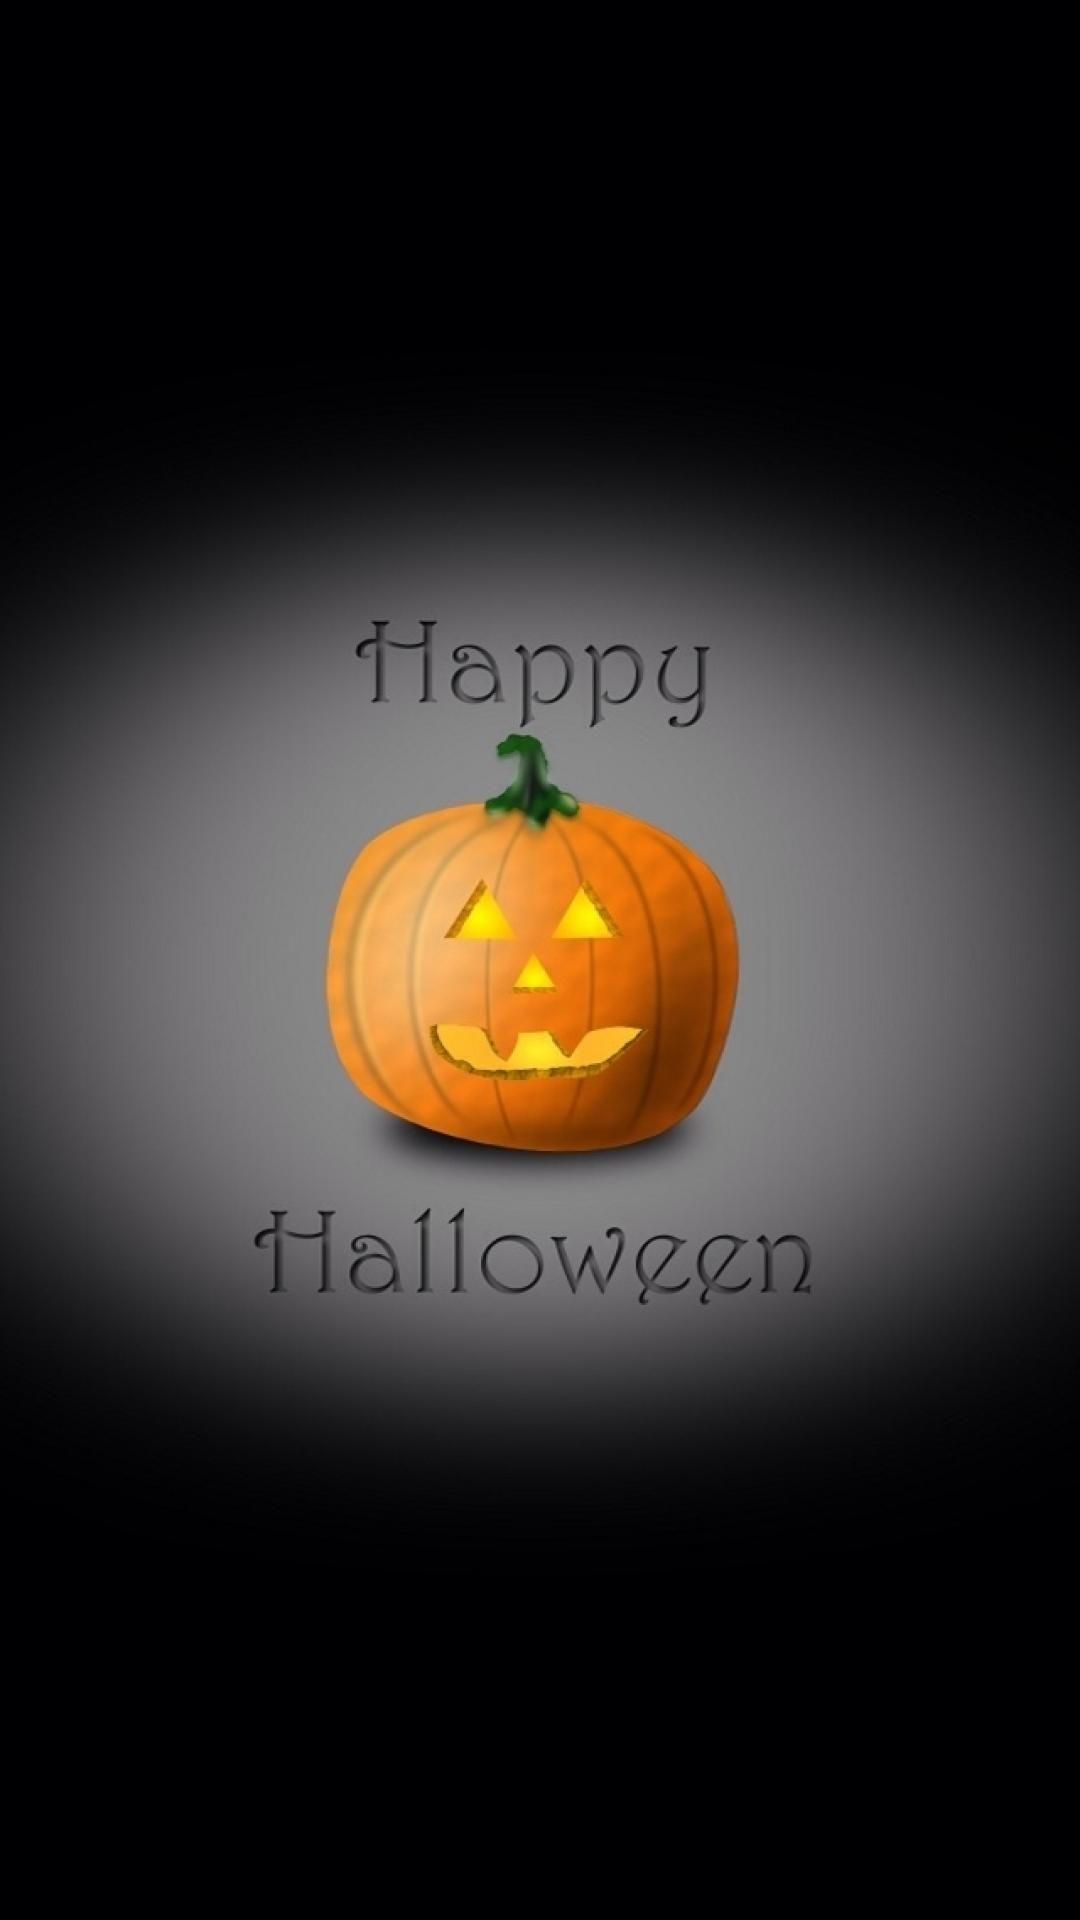 Pin By Maite Rachel On Wallpapers Happy Halloween Iphone 5 Wallpaper Holiday Wallpaper